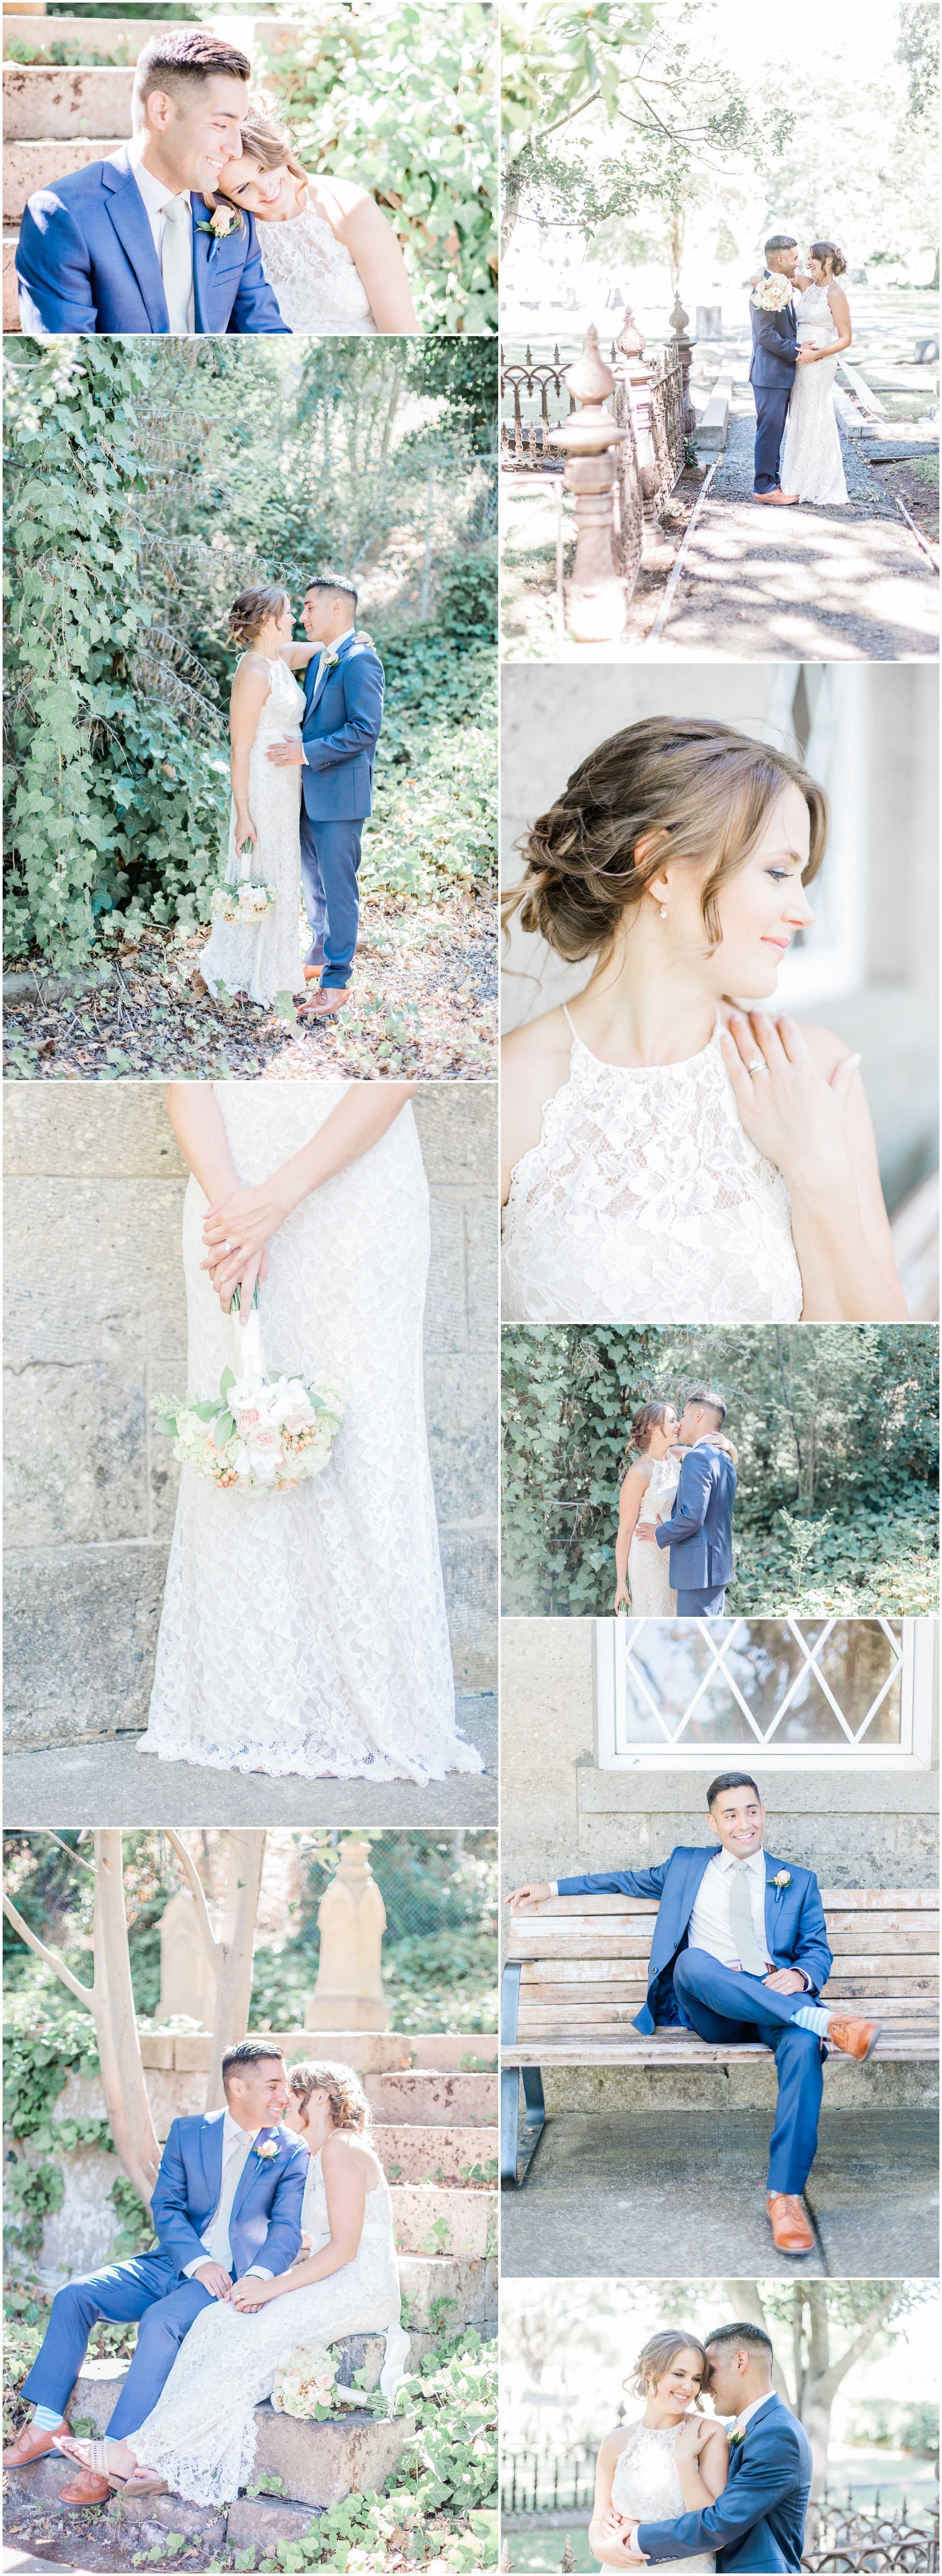 Wedding Photography, Wedding Photographer, Lodi Photographer, Sacramento Photographer, Outdoor portraits of a bride and groom in an old churchyard